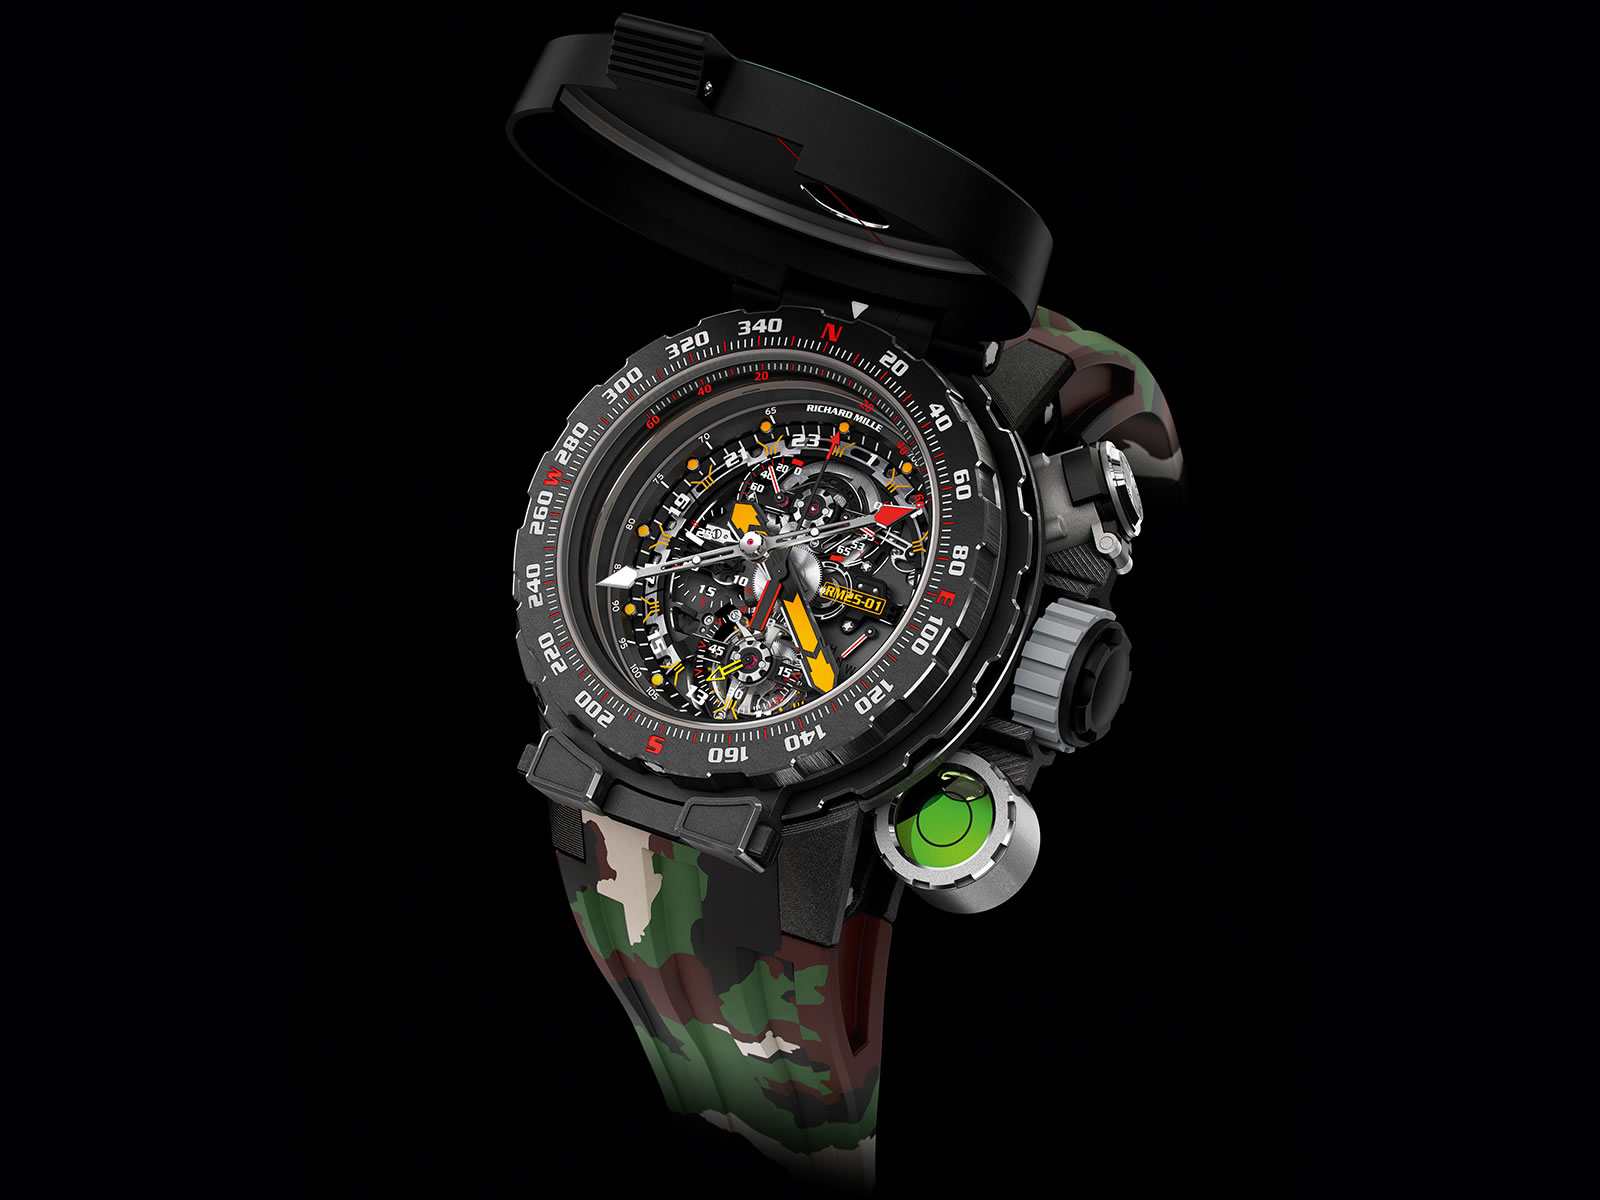 richard-mille-rm-25-01-tourbillon-adventure-sylvester-stallone-2-.jpg